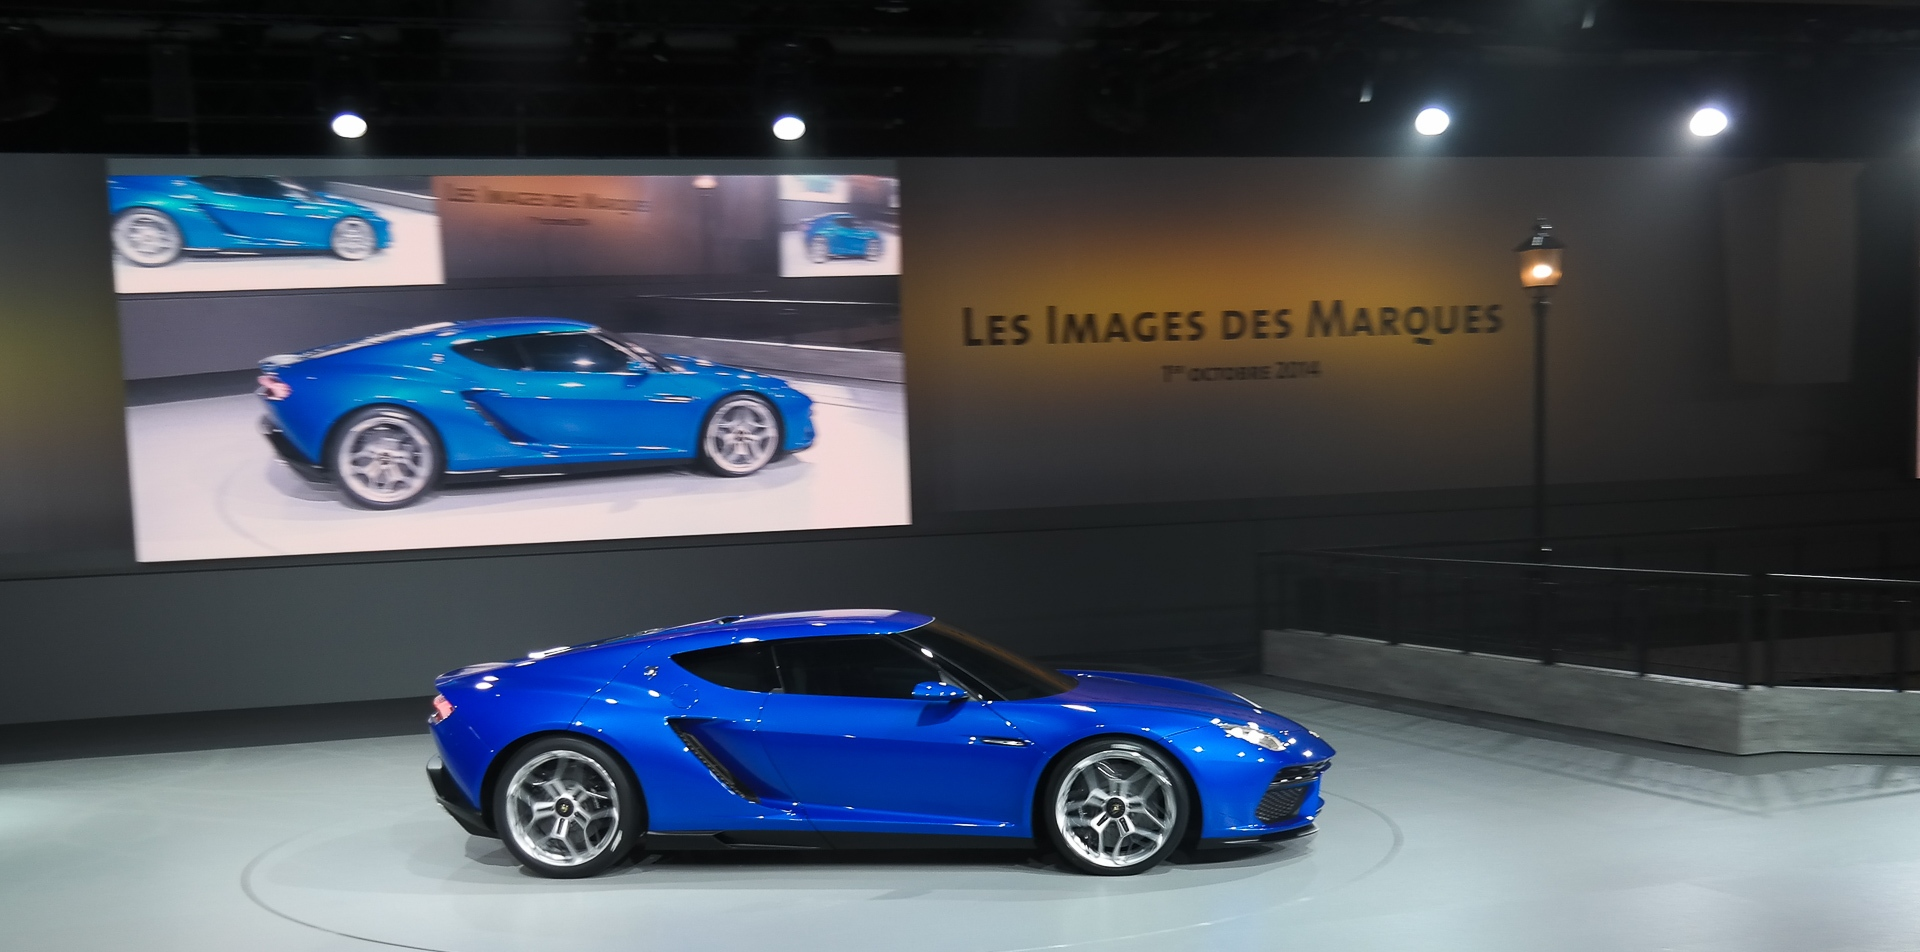 lamborghini-asterion-lp-910-4-looks-like-an-estoque-evora-mashup-live-photos_1